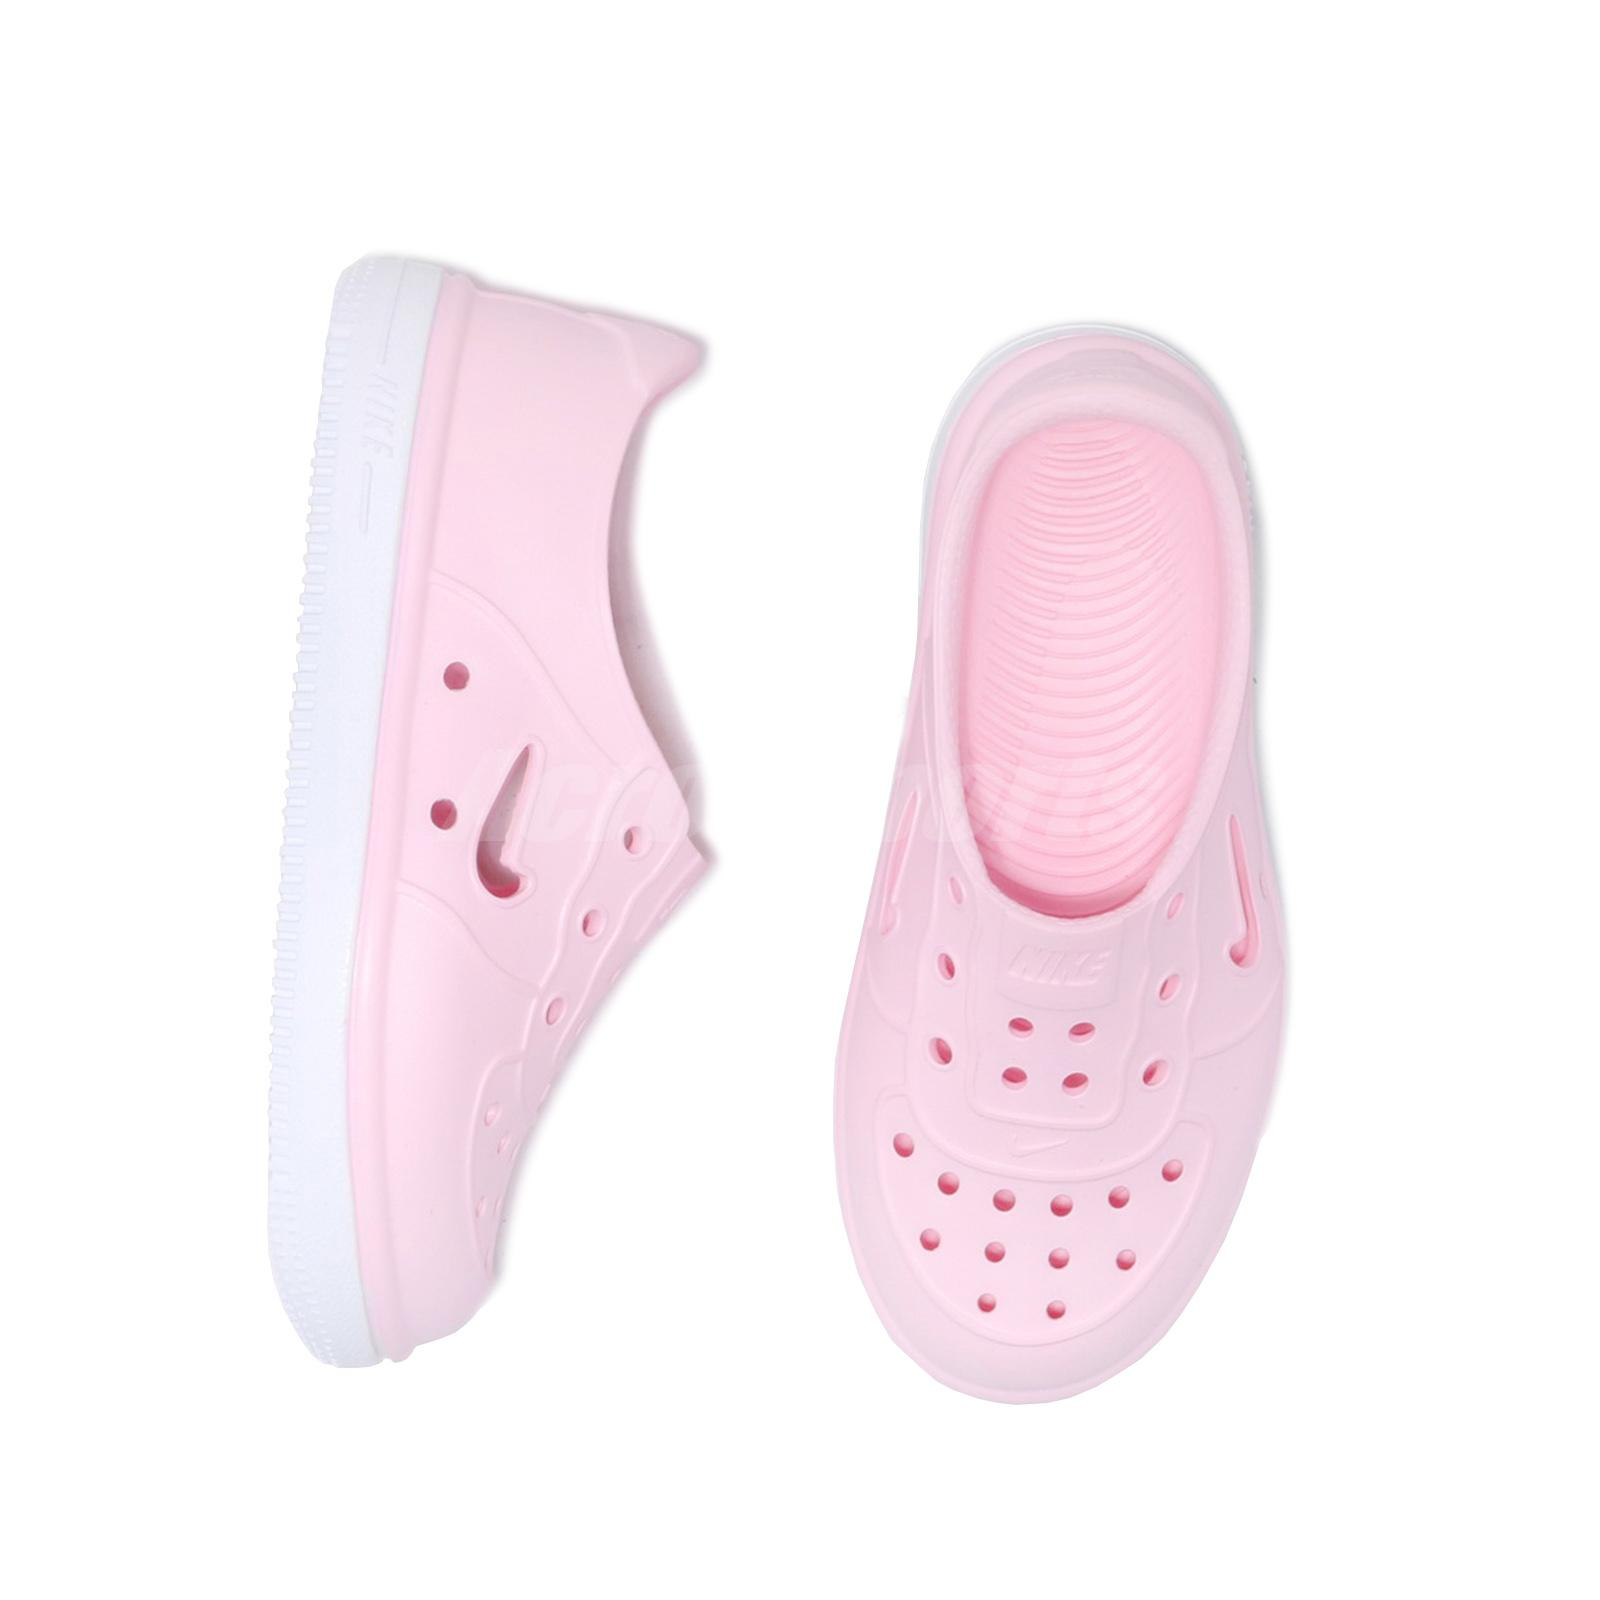 Nike Foam Force 1 TD Pink White Toddler Infant Slip On Shoes Sandals AQ2442-600